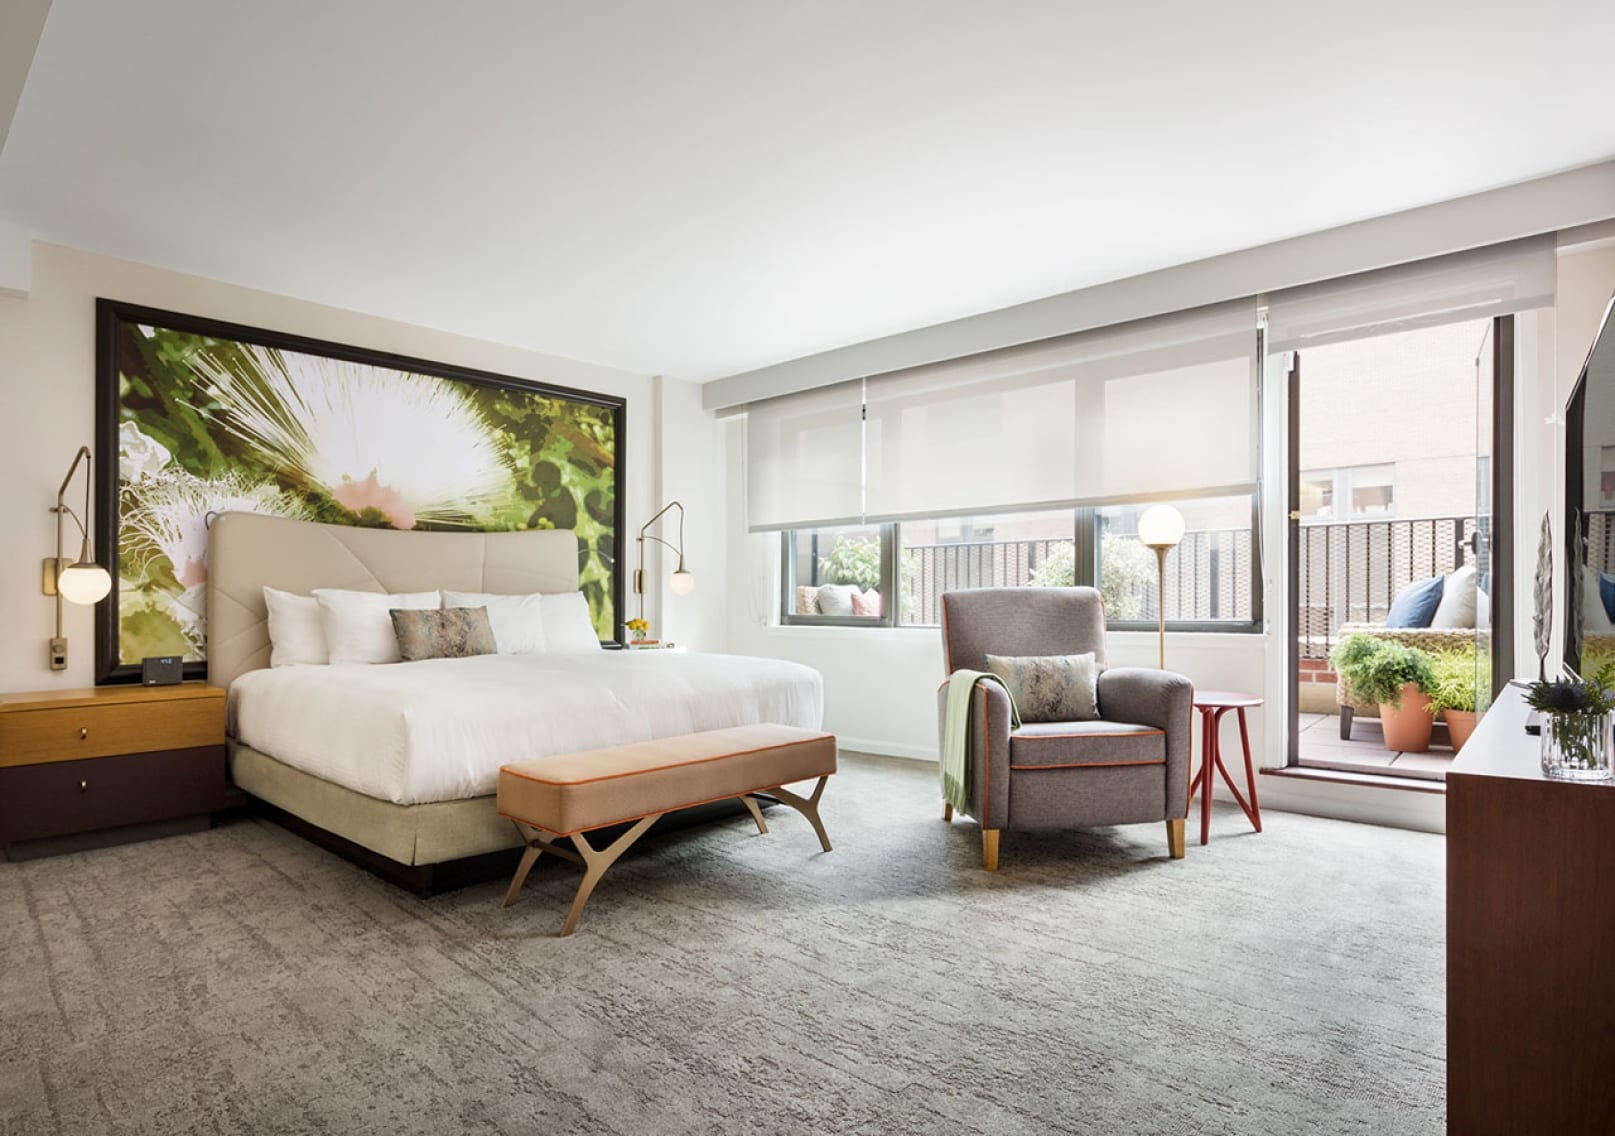 Perspective view of the large master bedroom inside Affinia Gardens' two bedroom suites. A large work of art spans the wall above a king sized bed. At the foot is a wooden bench. An easy chair is placed by the window, looking out to the terrace.